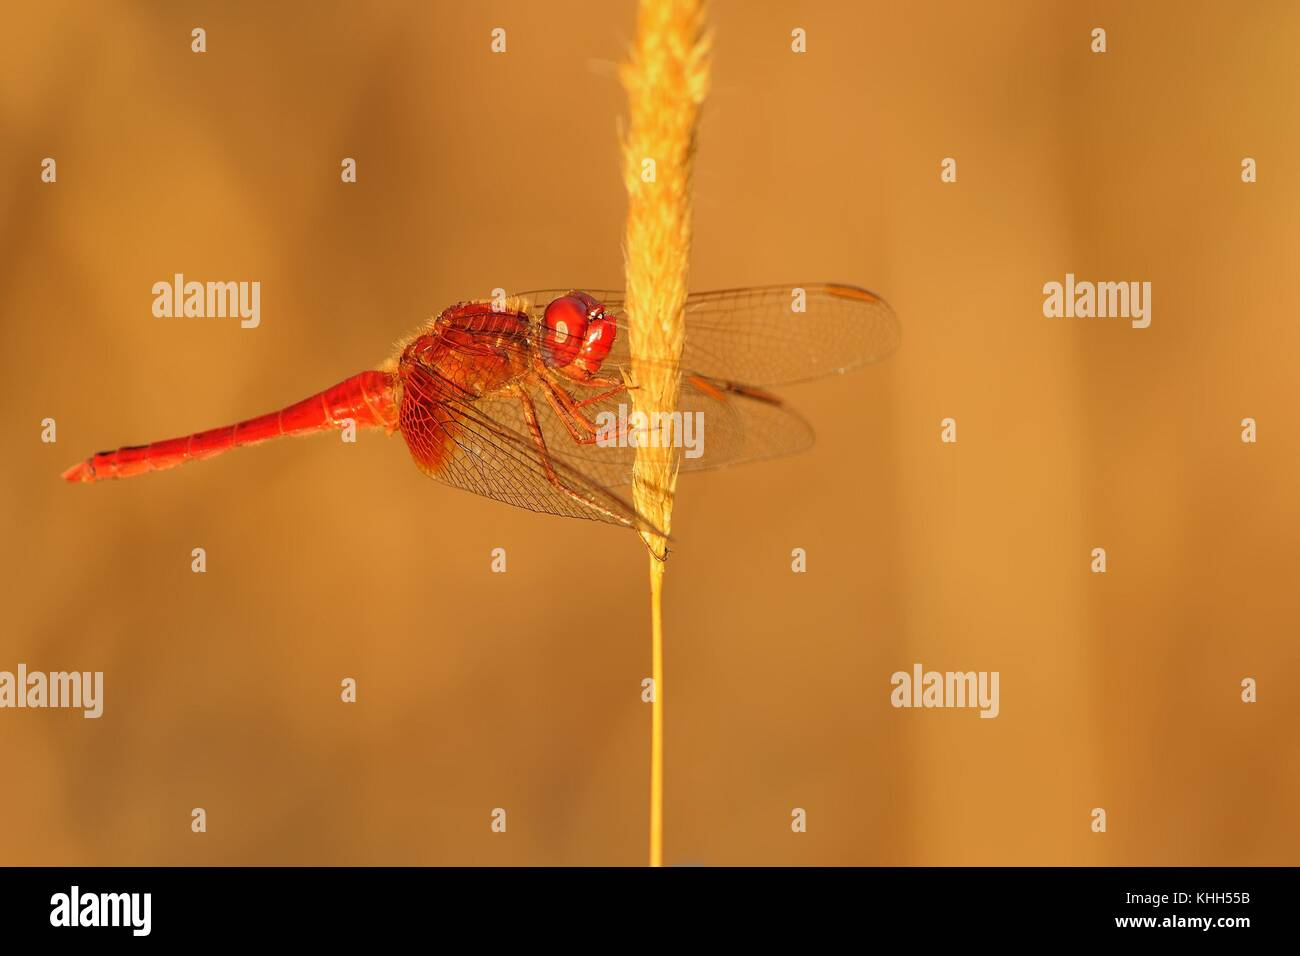 Scarlet dragonfly (Crocothemis erythraea) perched on the dry blade of grass enlightened by evening sun. - Stock Image